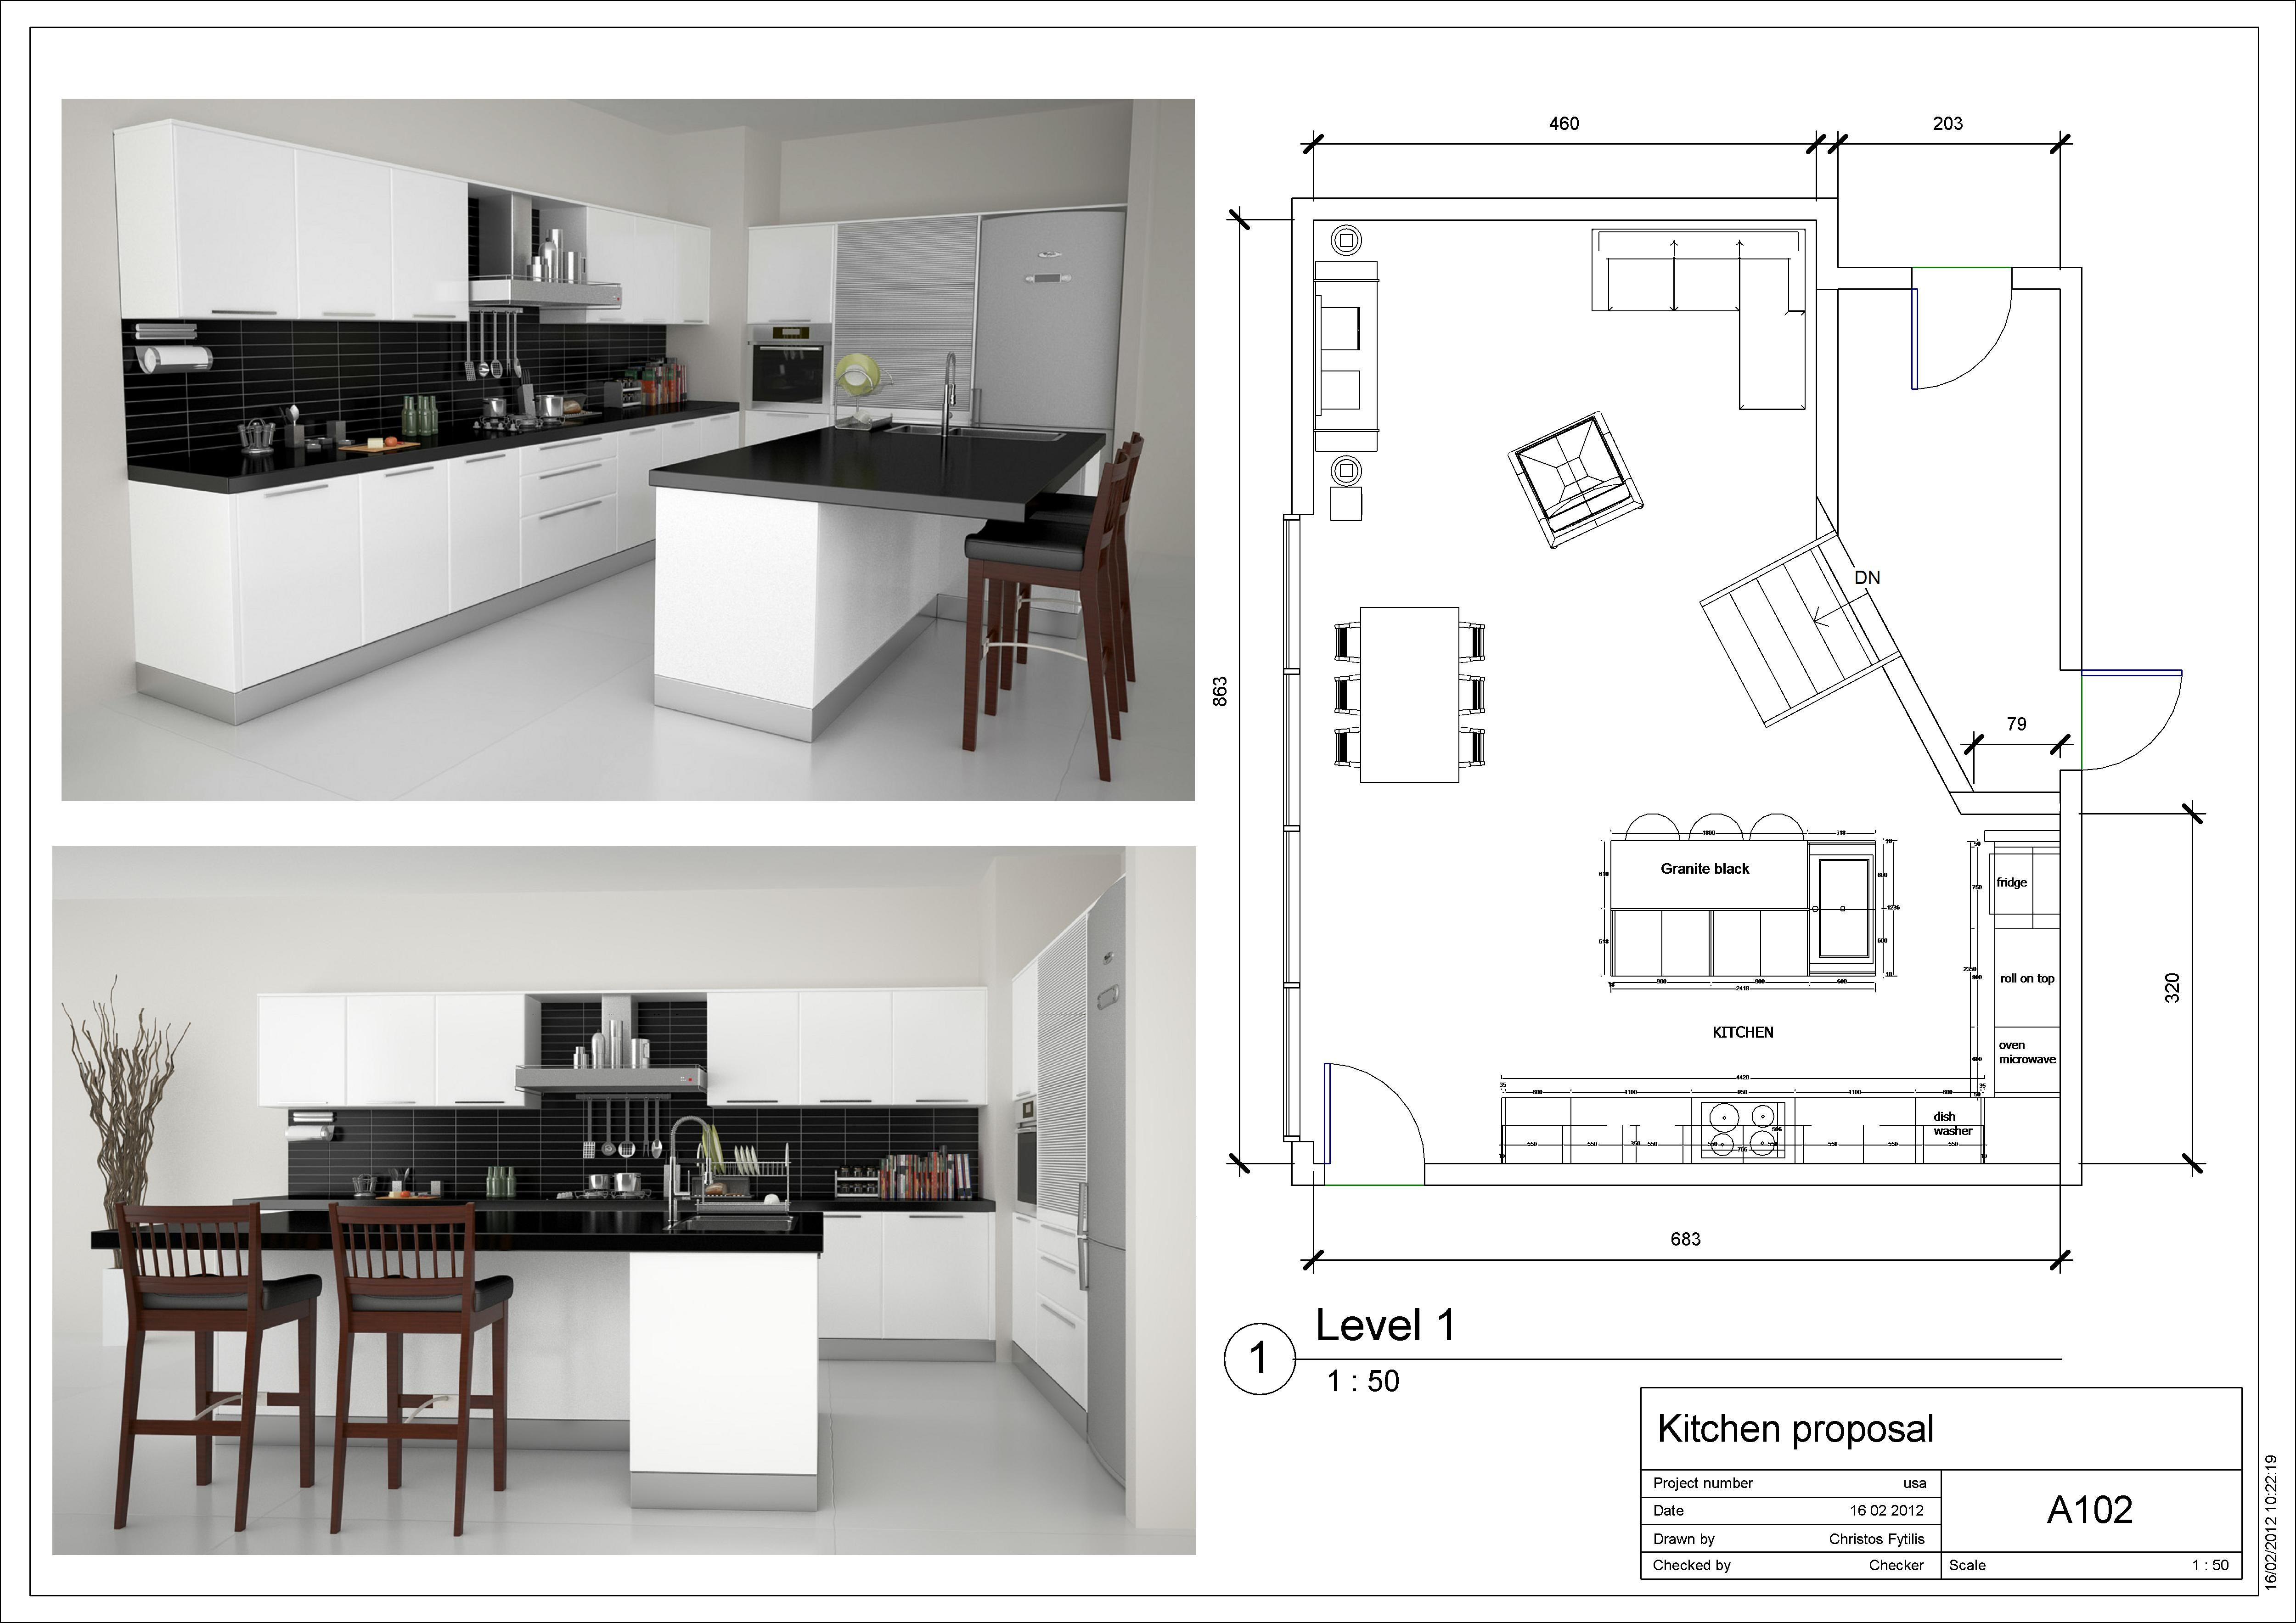 Kitchen Design Layout Ideas L-Shaped Amazing Planning A Kitchen Remodel  Httpwwwkitchenstir